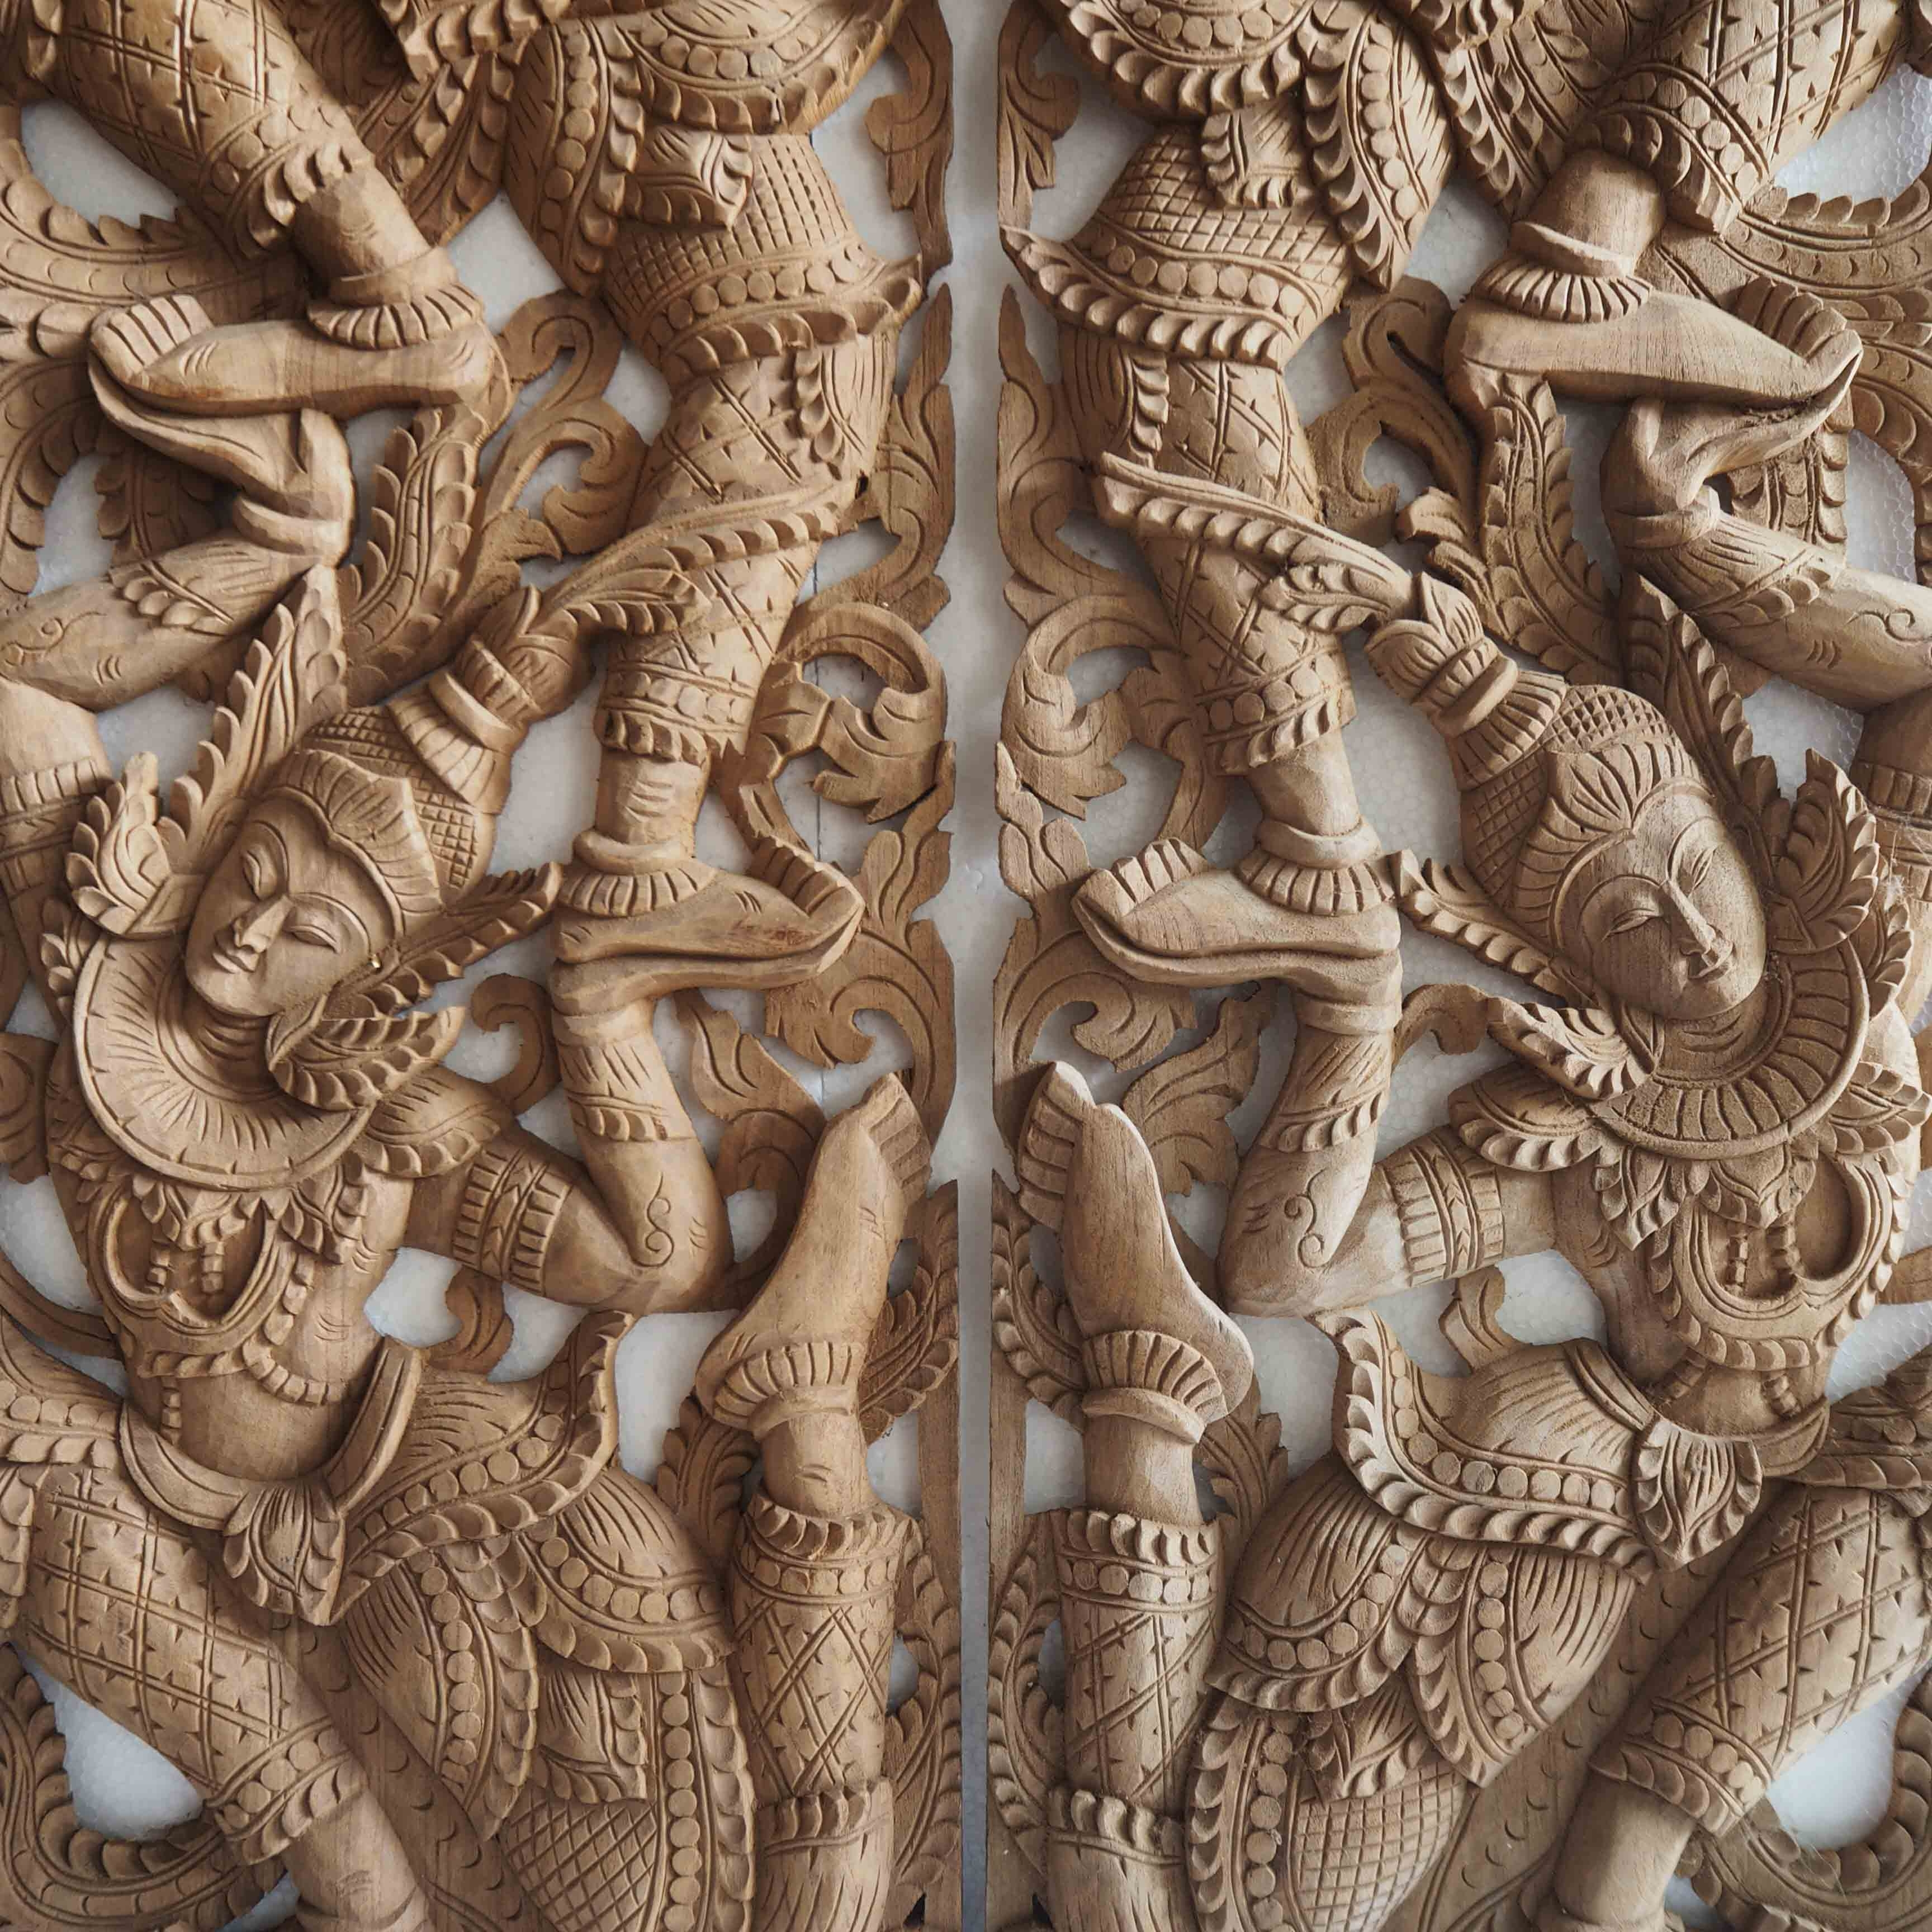 Popular Pair Of Wooden Wall Art Panel From Thailand – Siam Sawadee In Wood Carved Wall Art Panels (View 9 of 15)